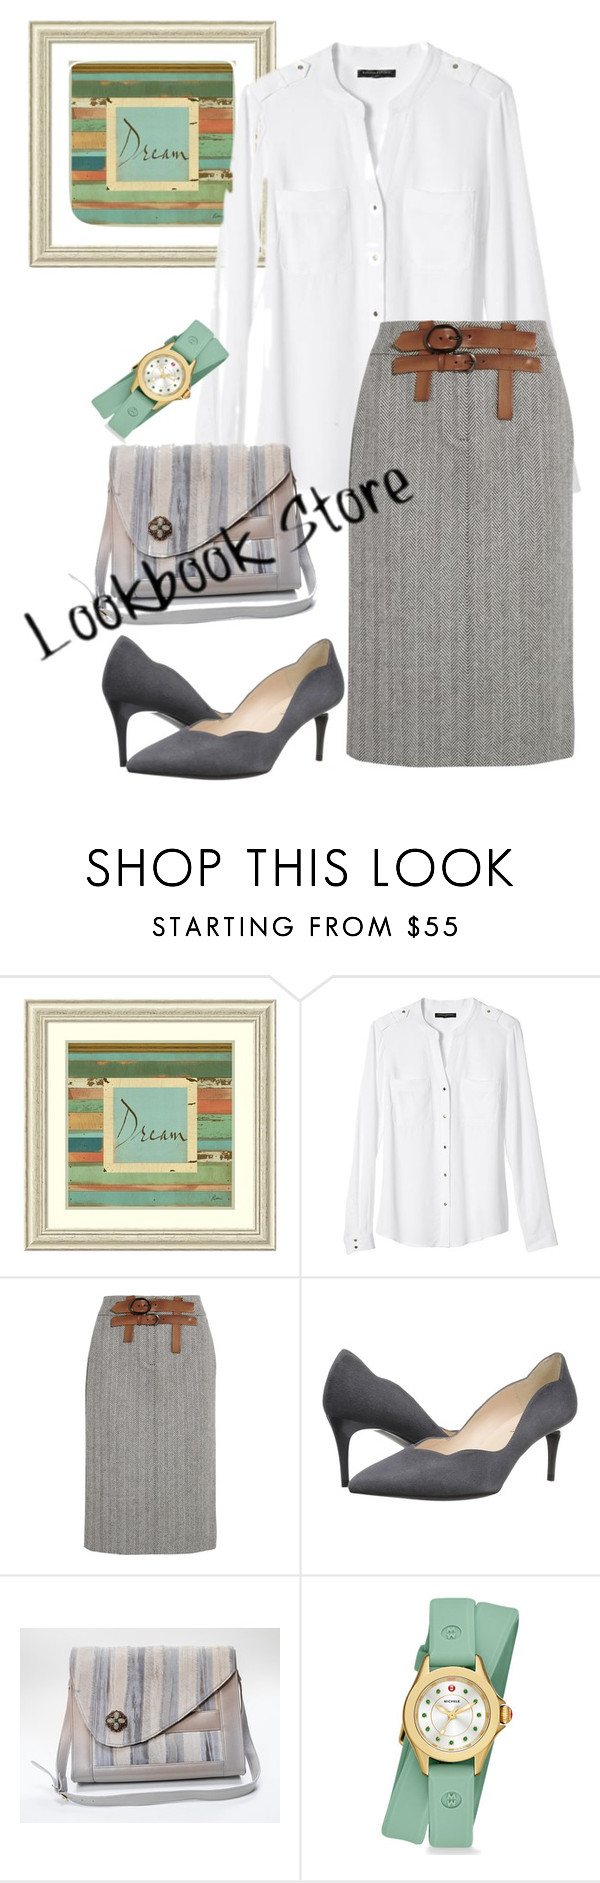 """""""skirt"""" by masayuki4499 ❤ liked on Polyvore featuring Amanti Art, Banana Republic, Tom Ford, Sesto Meucci, Porsche and Michele"""